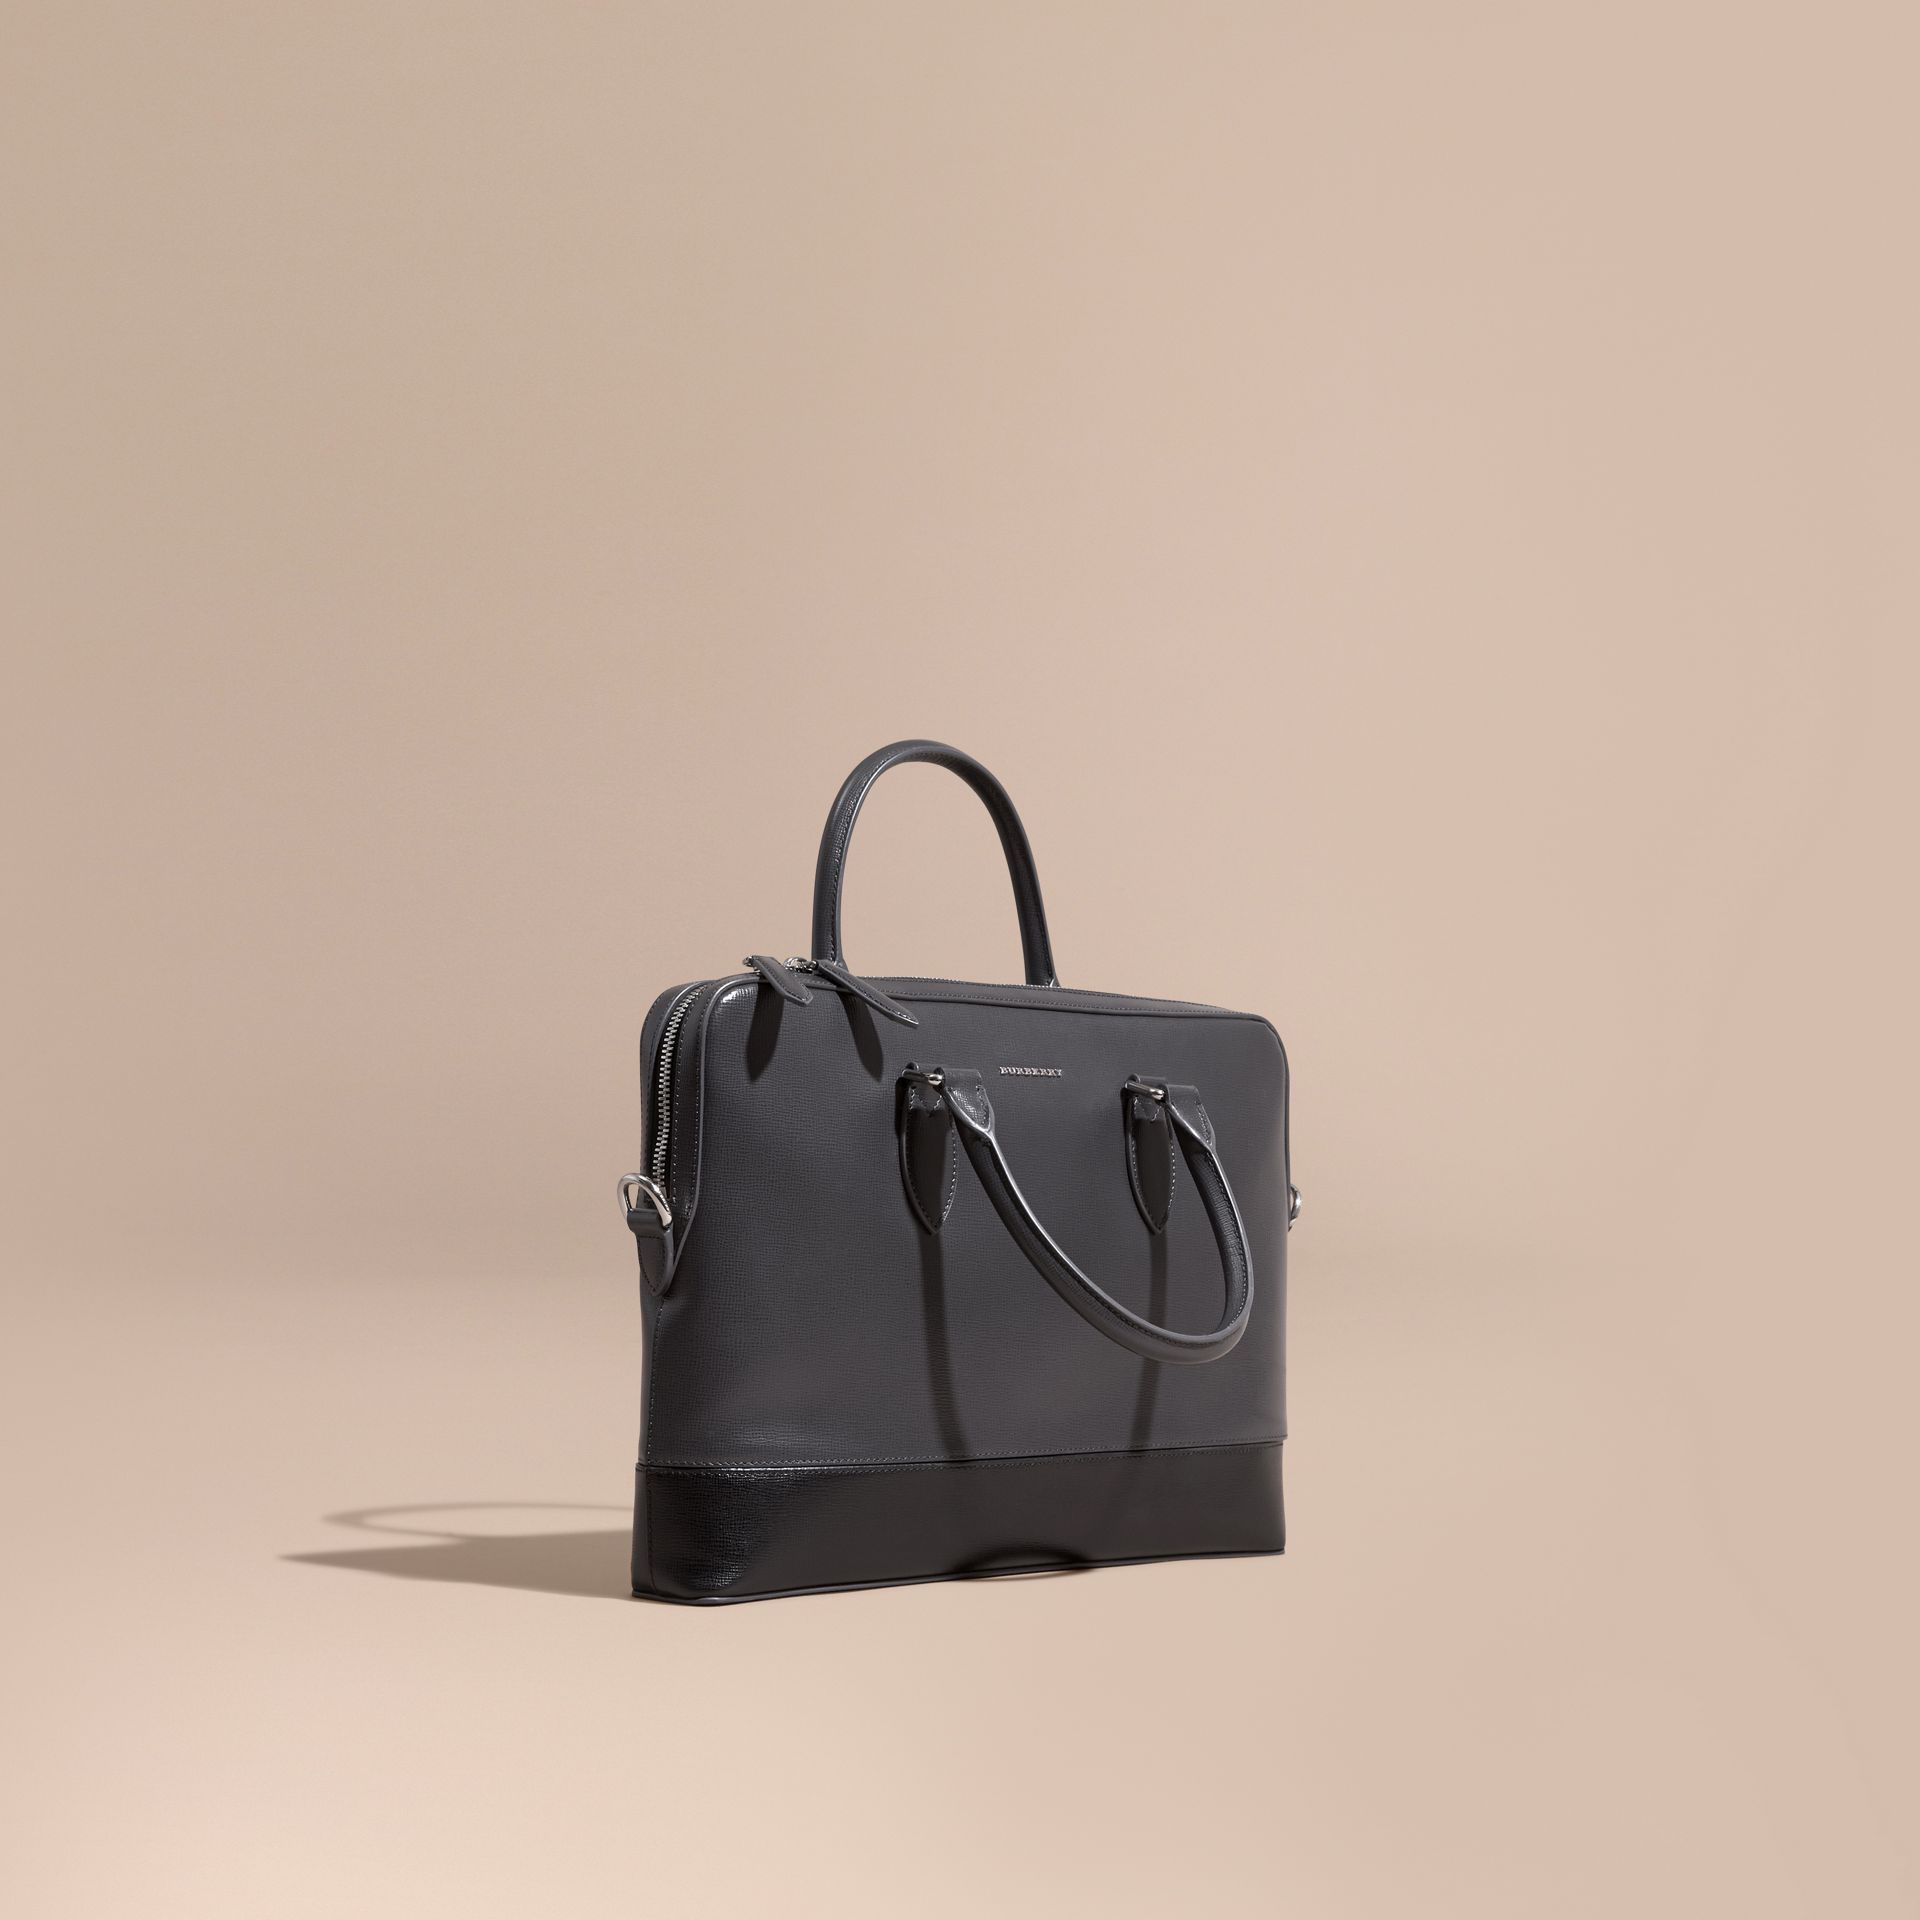 Anthracite/noir Sac The Barrow fin en cuir London à panneaux Anthracite/noir - photo de la galerie 1